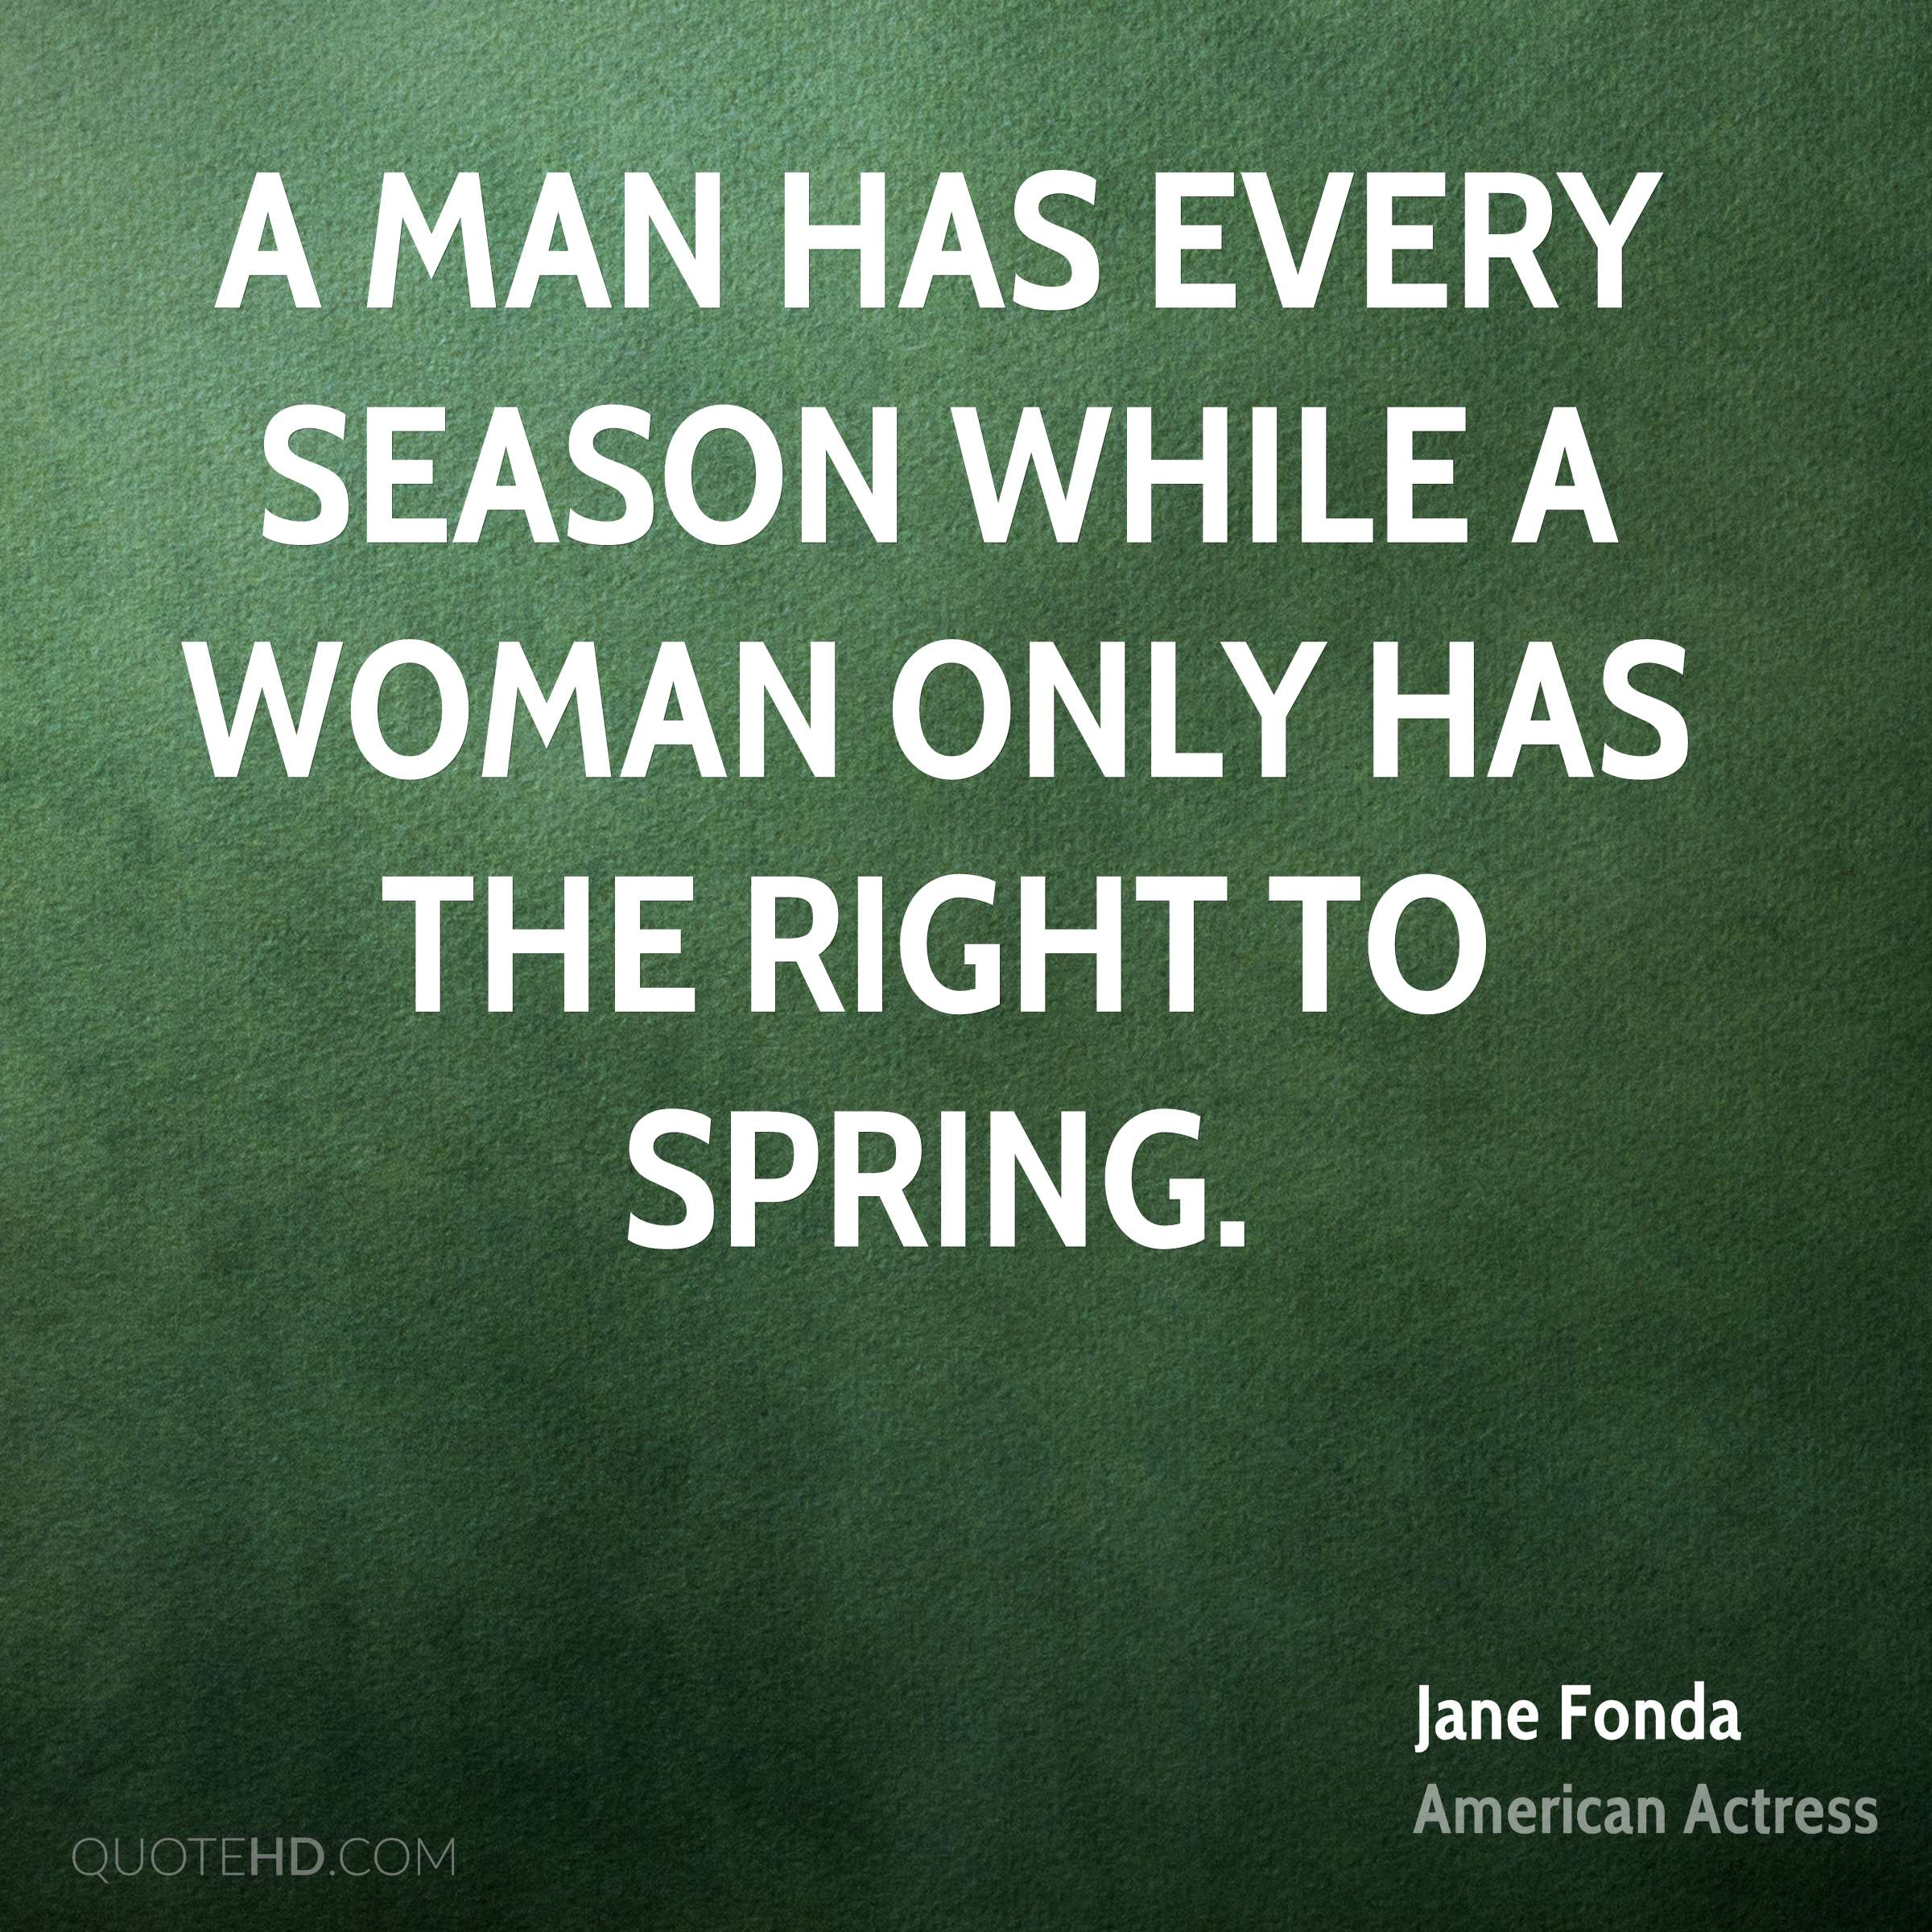 A man has every season while a woman only has the right to spring.